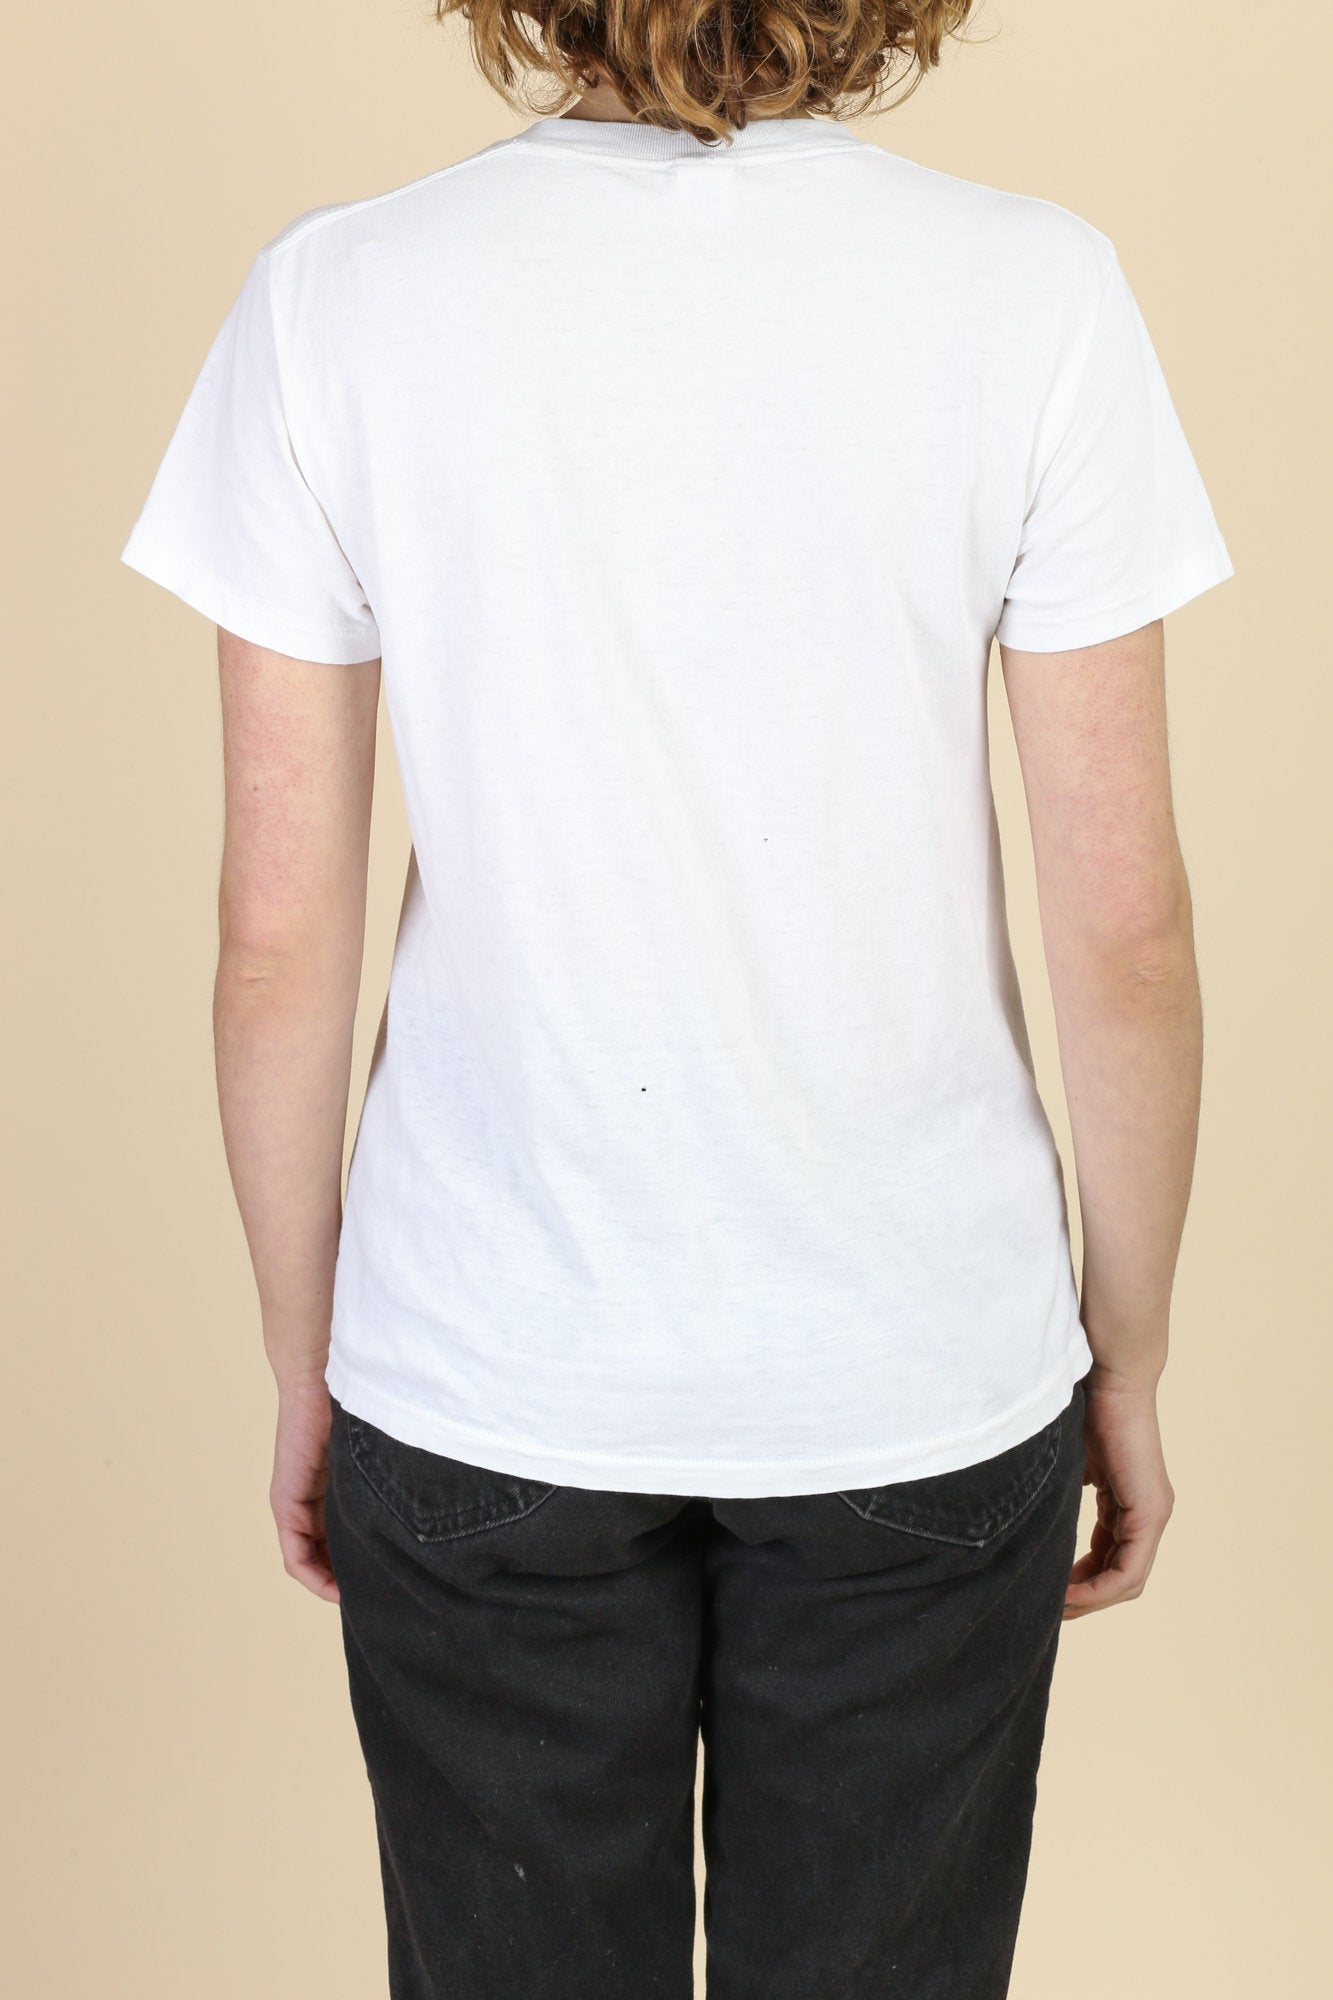 90s White Crew Neck Tee - Men's Medium